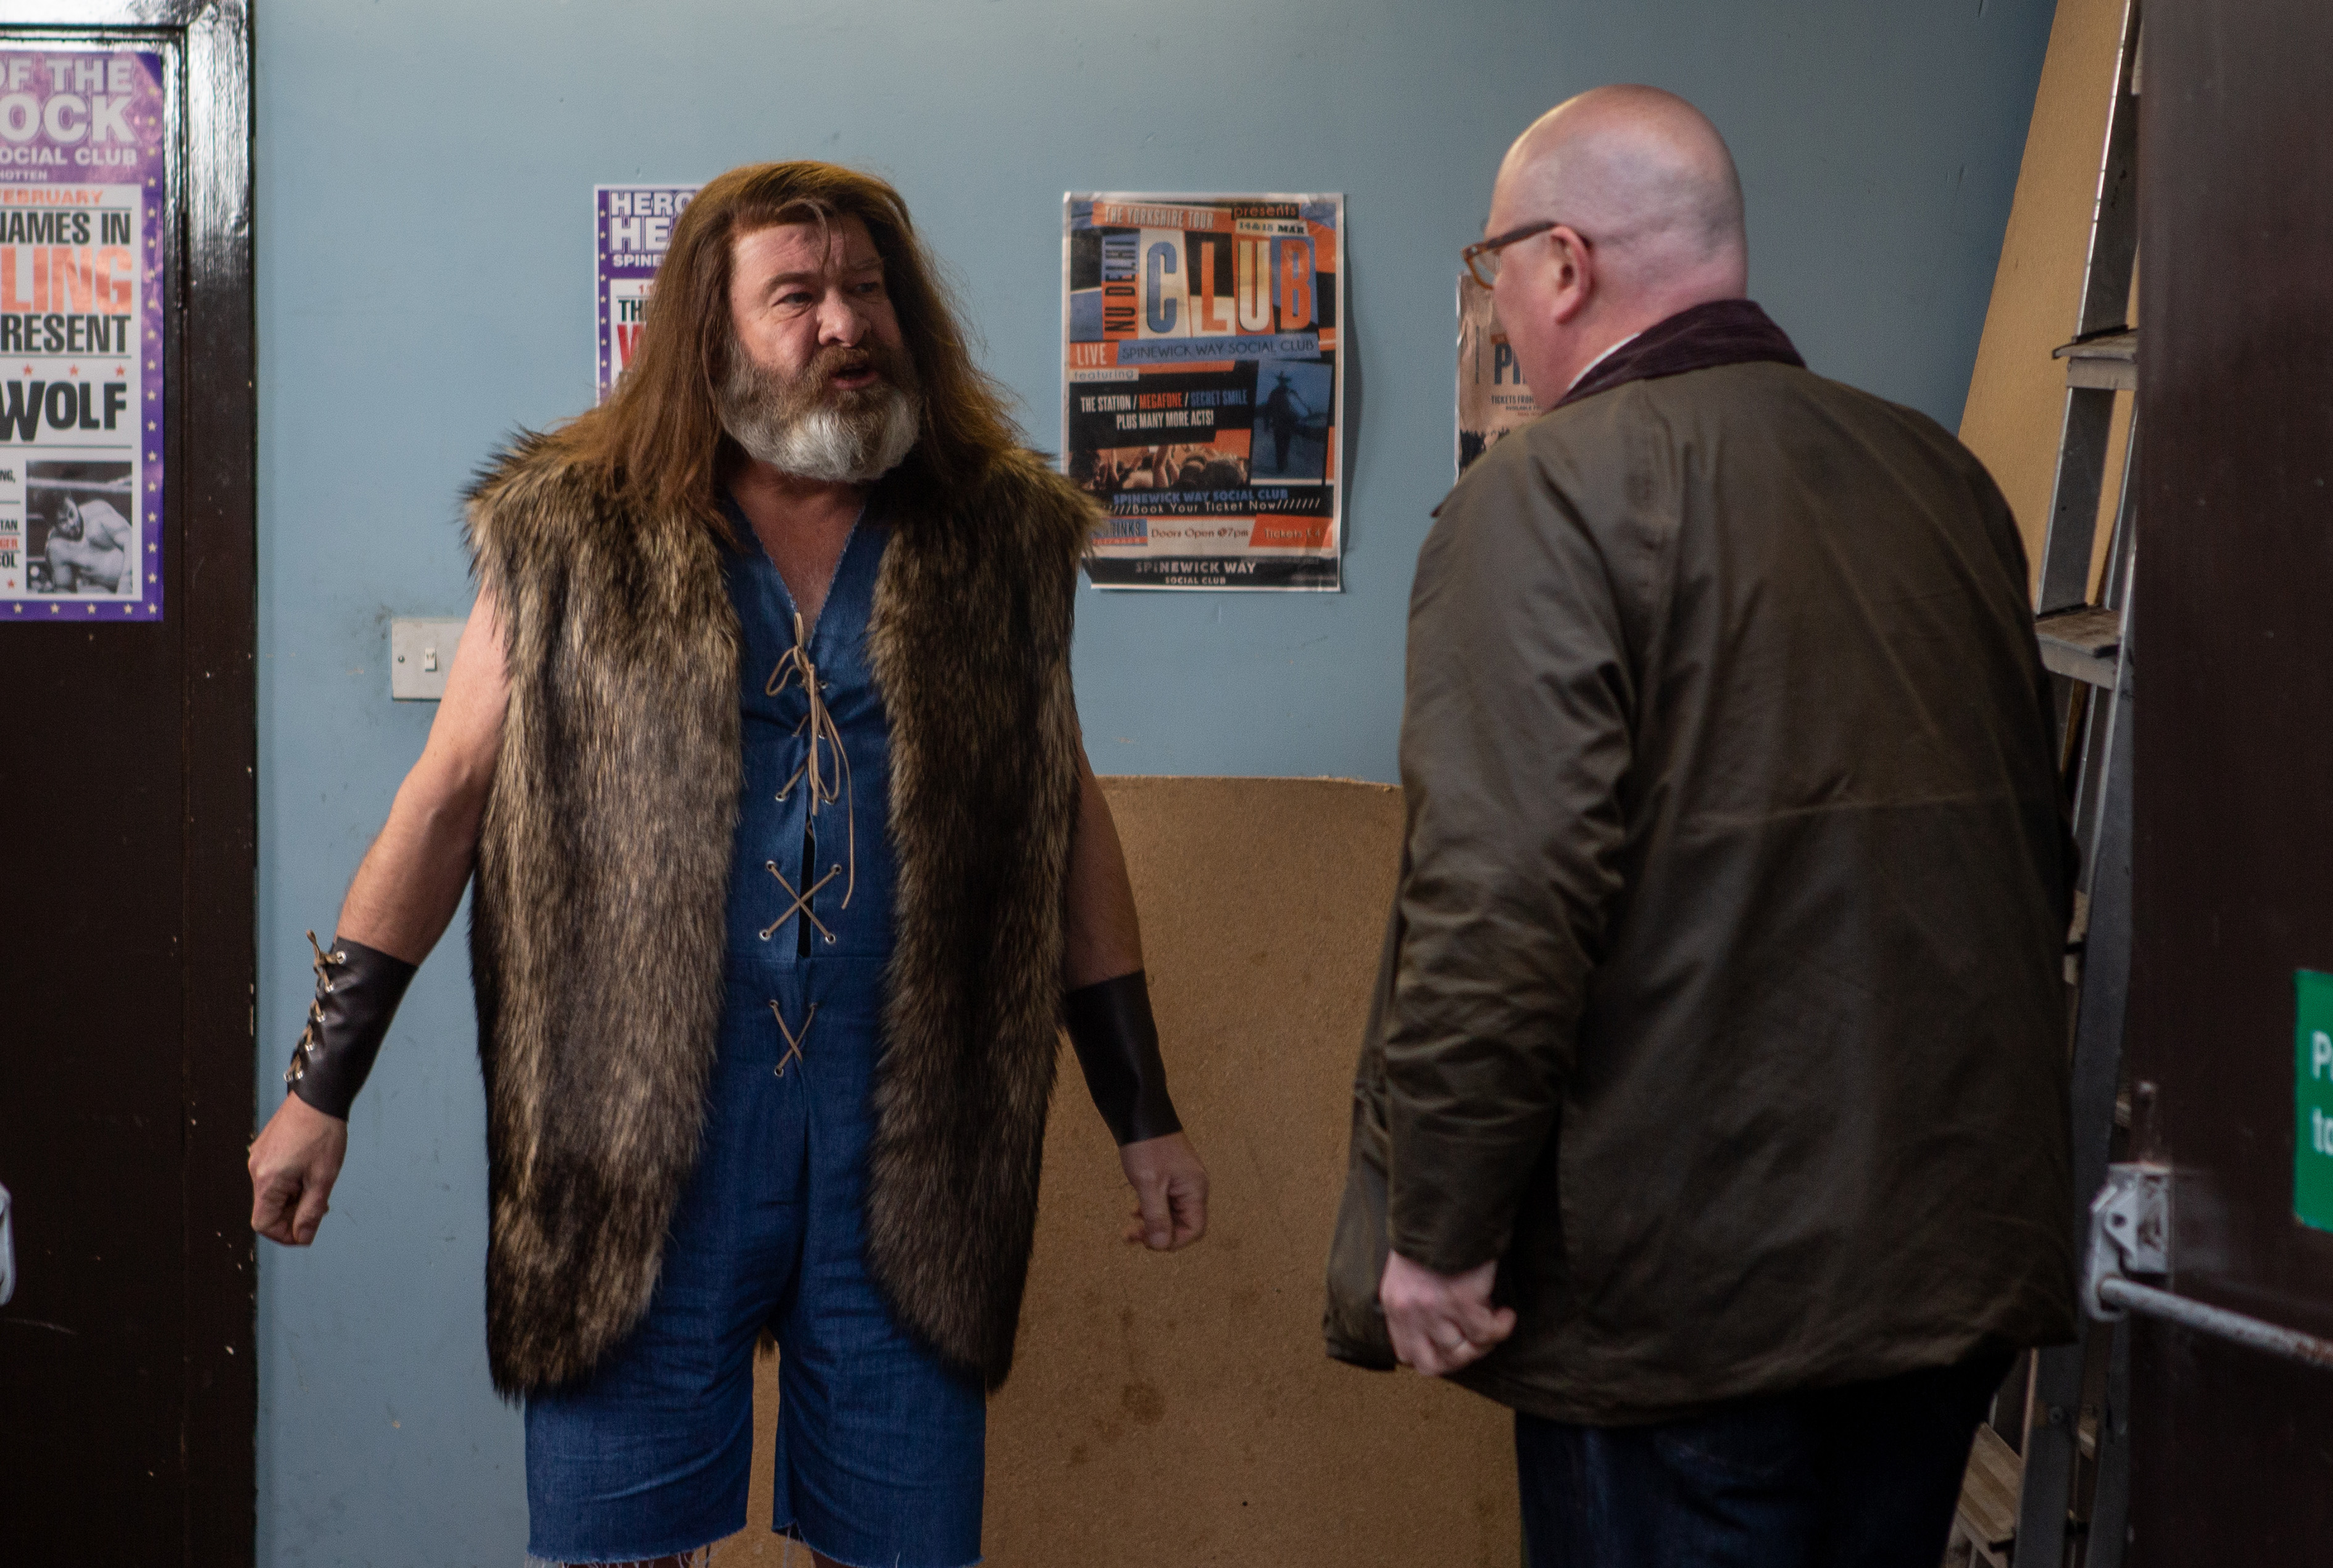 Emmerdale spoilers: Paddy Kirk comes face to face with his 'dad' Bear Wolf